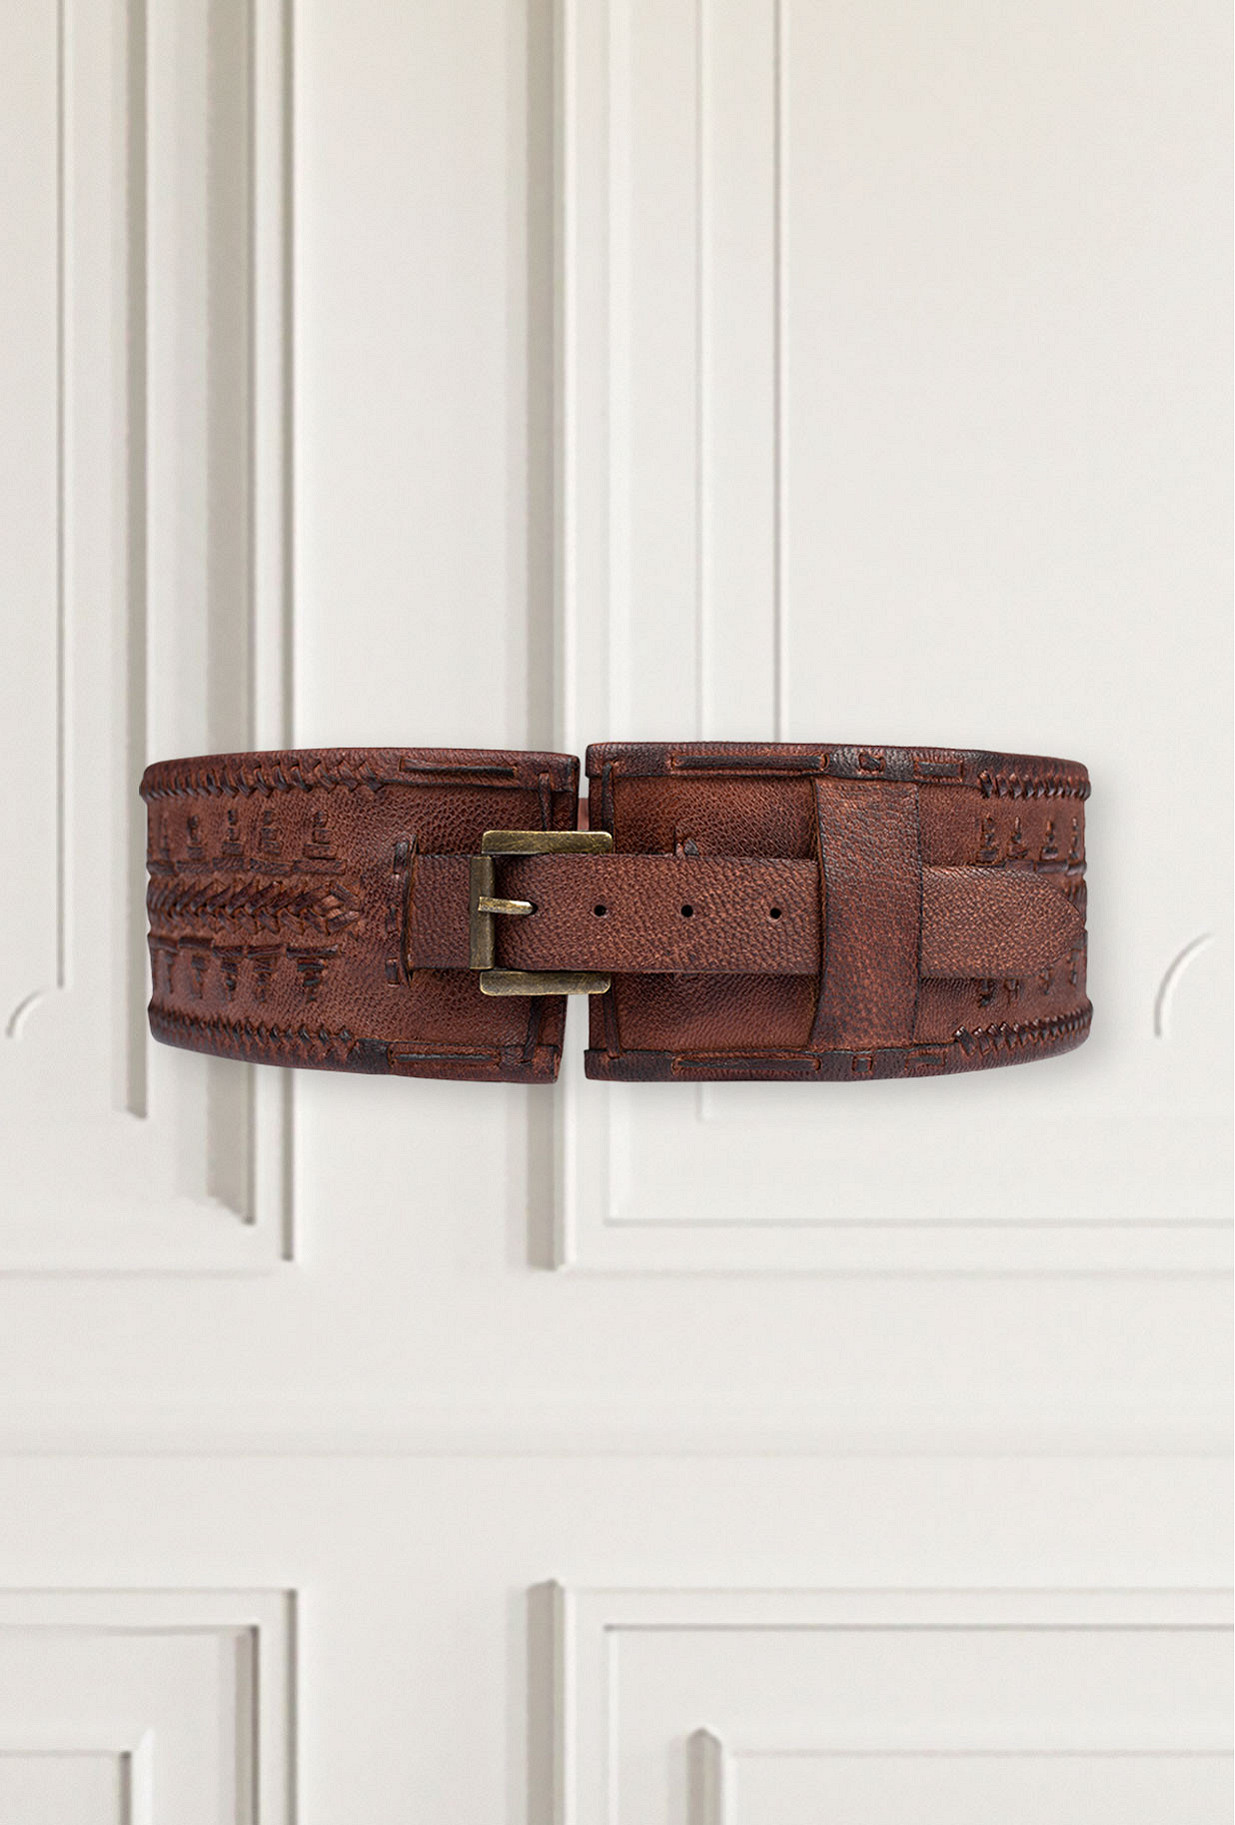 Ceinture Marron Connie Mes Demoiselles Paris